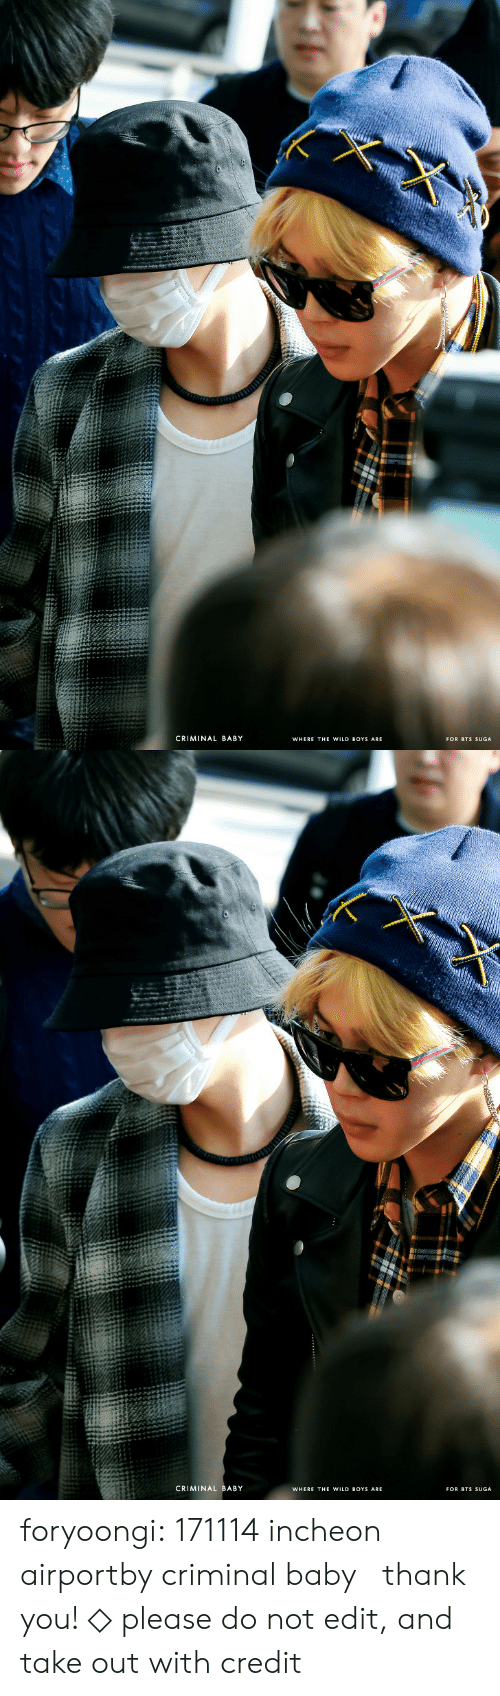 bts suga: CRIMINAL BABY  WHERE THE WILD BOYS ARE  FOR BTS SUGA   CRIMINAL BABY  WHERE THE WILD BOYS ARE  FOR BTS SUGA foryoongi:  171114 incheon airportby criminal baby。 thank you! ◇ please do not edit, and take out with credit。